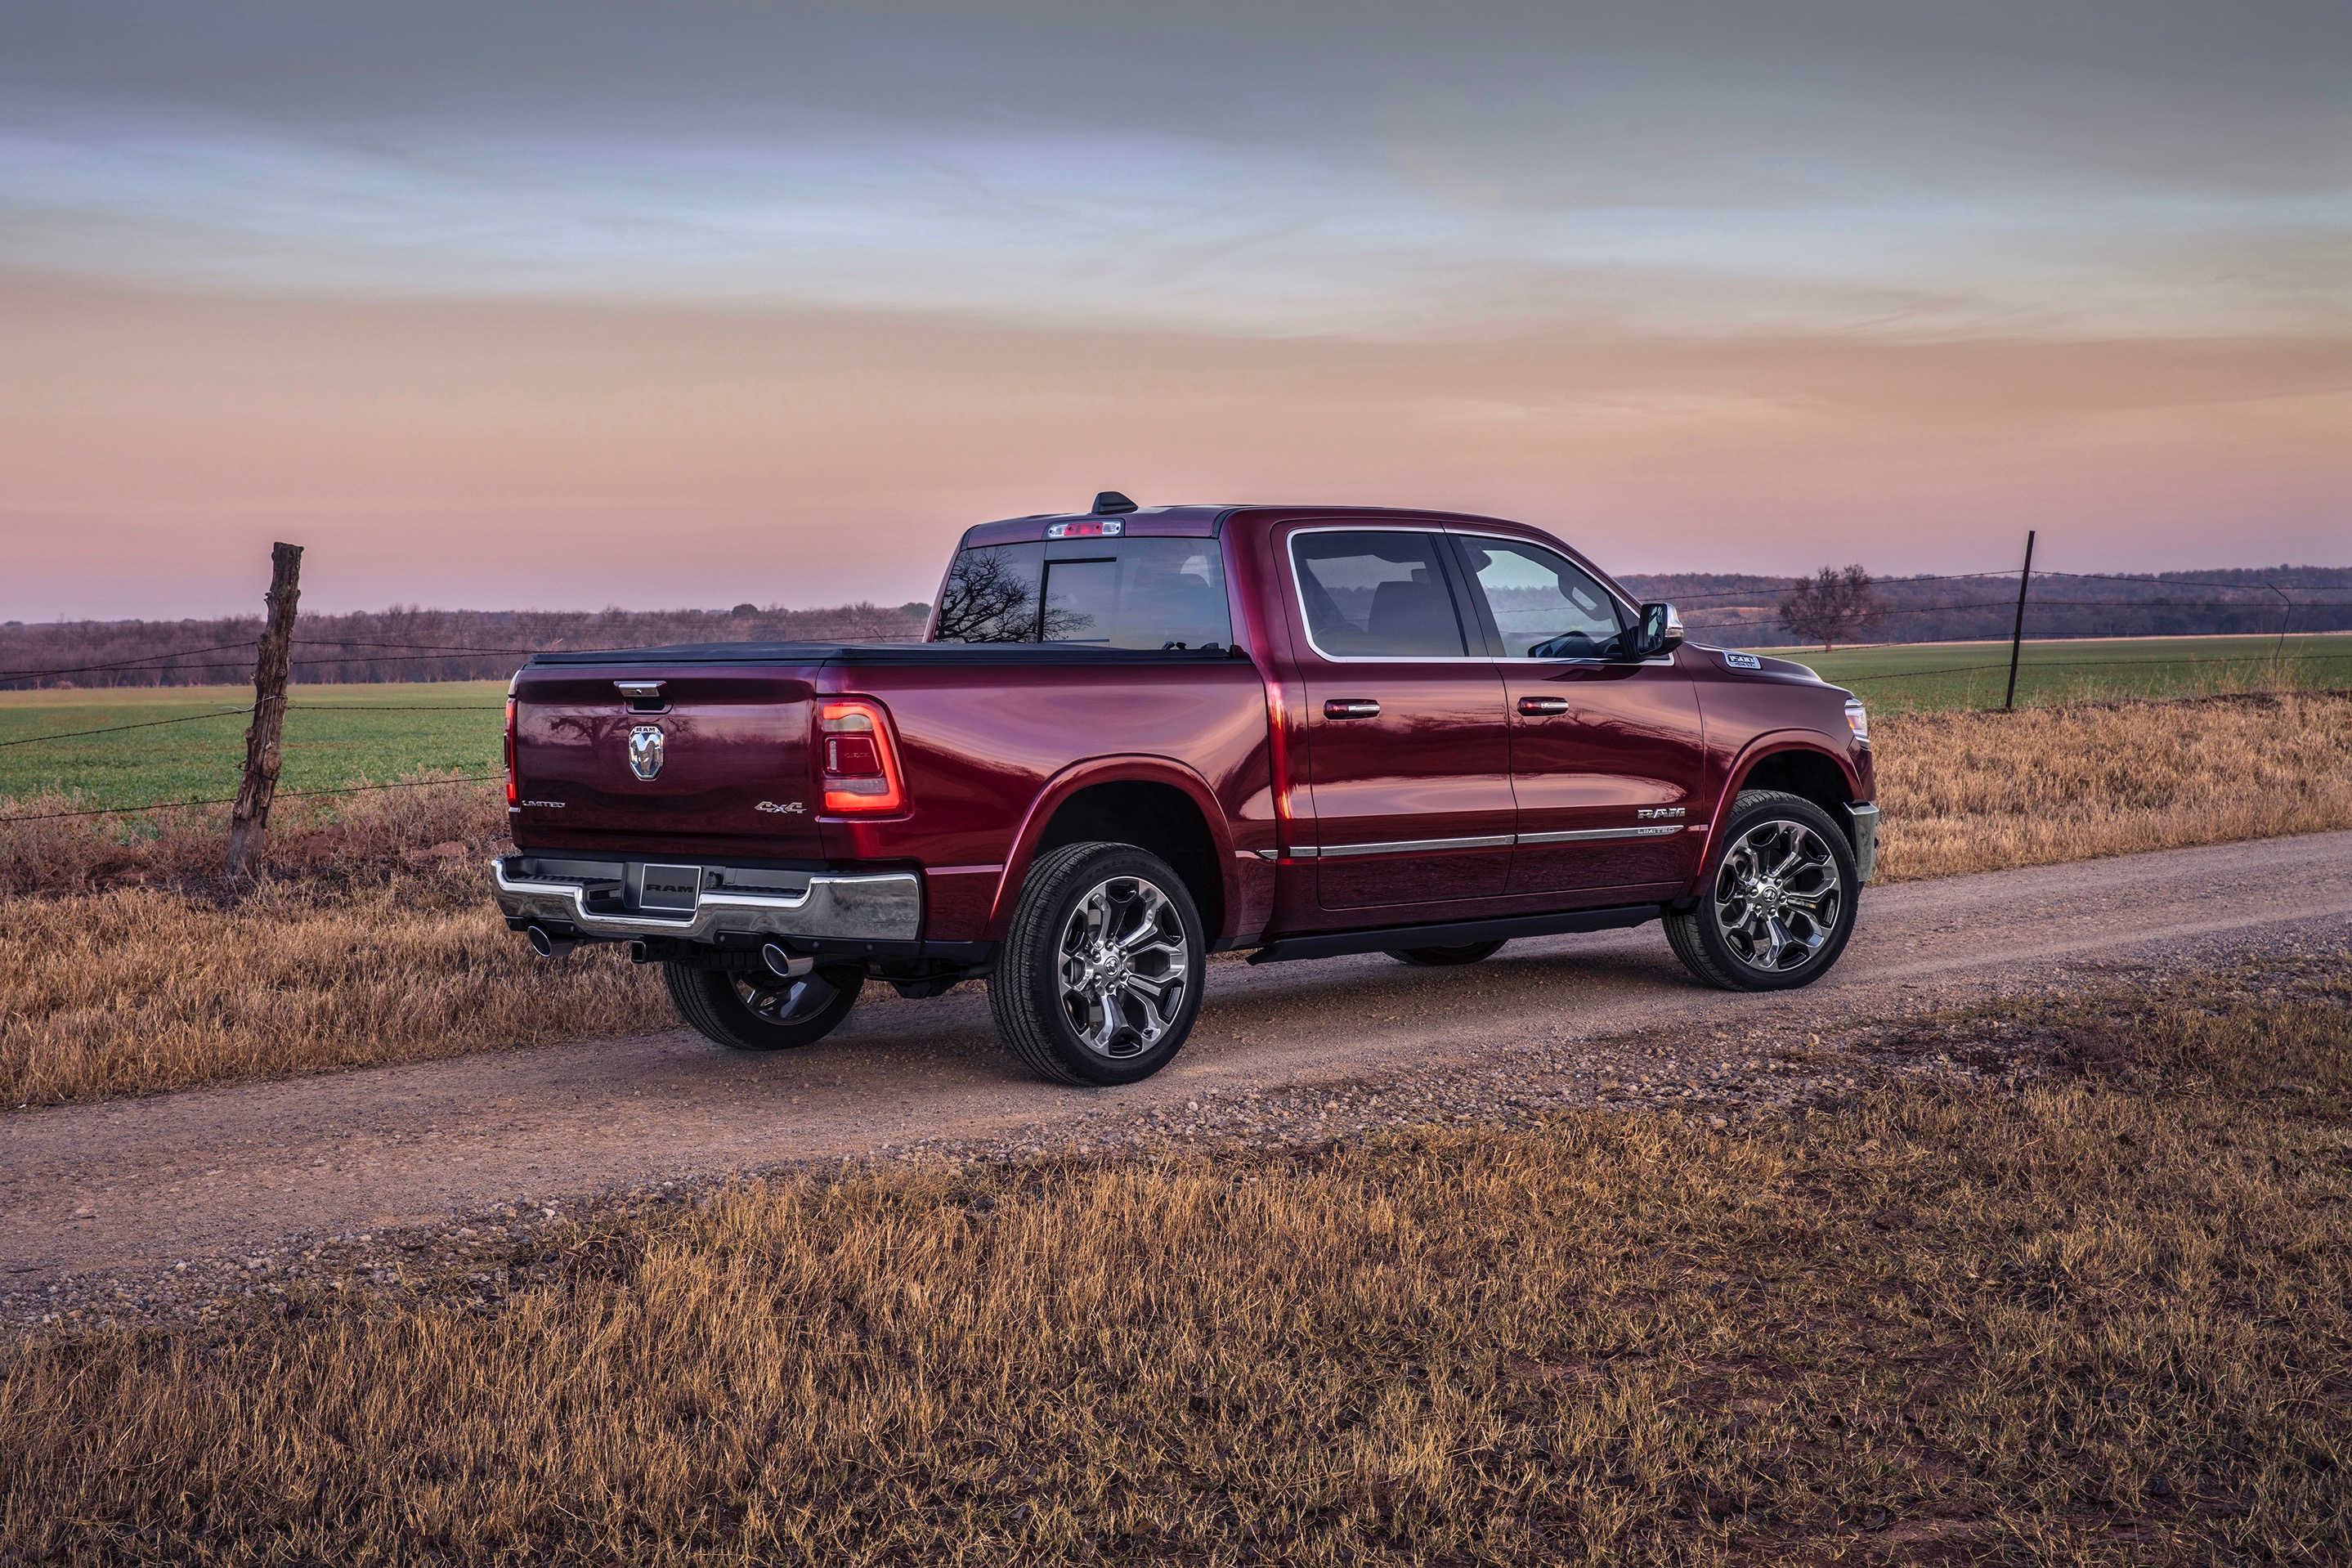 Toyota Camry Hd Wallpapers How Does The 2019 Ram 1500 S Hybrid System Work Carfax Blog